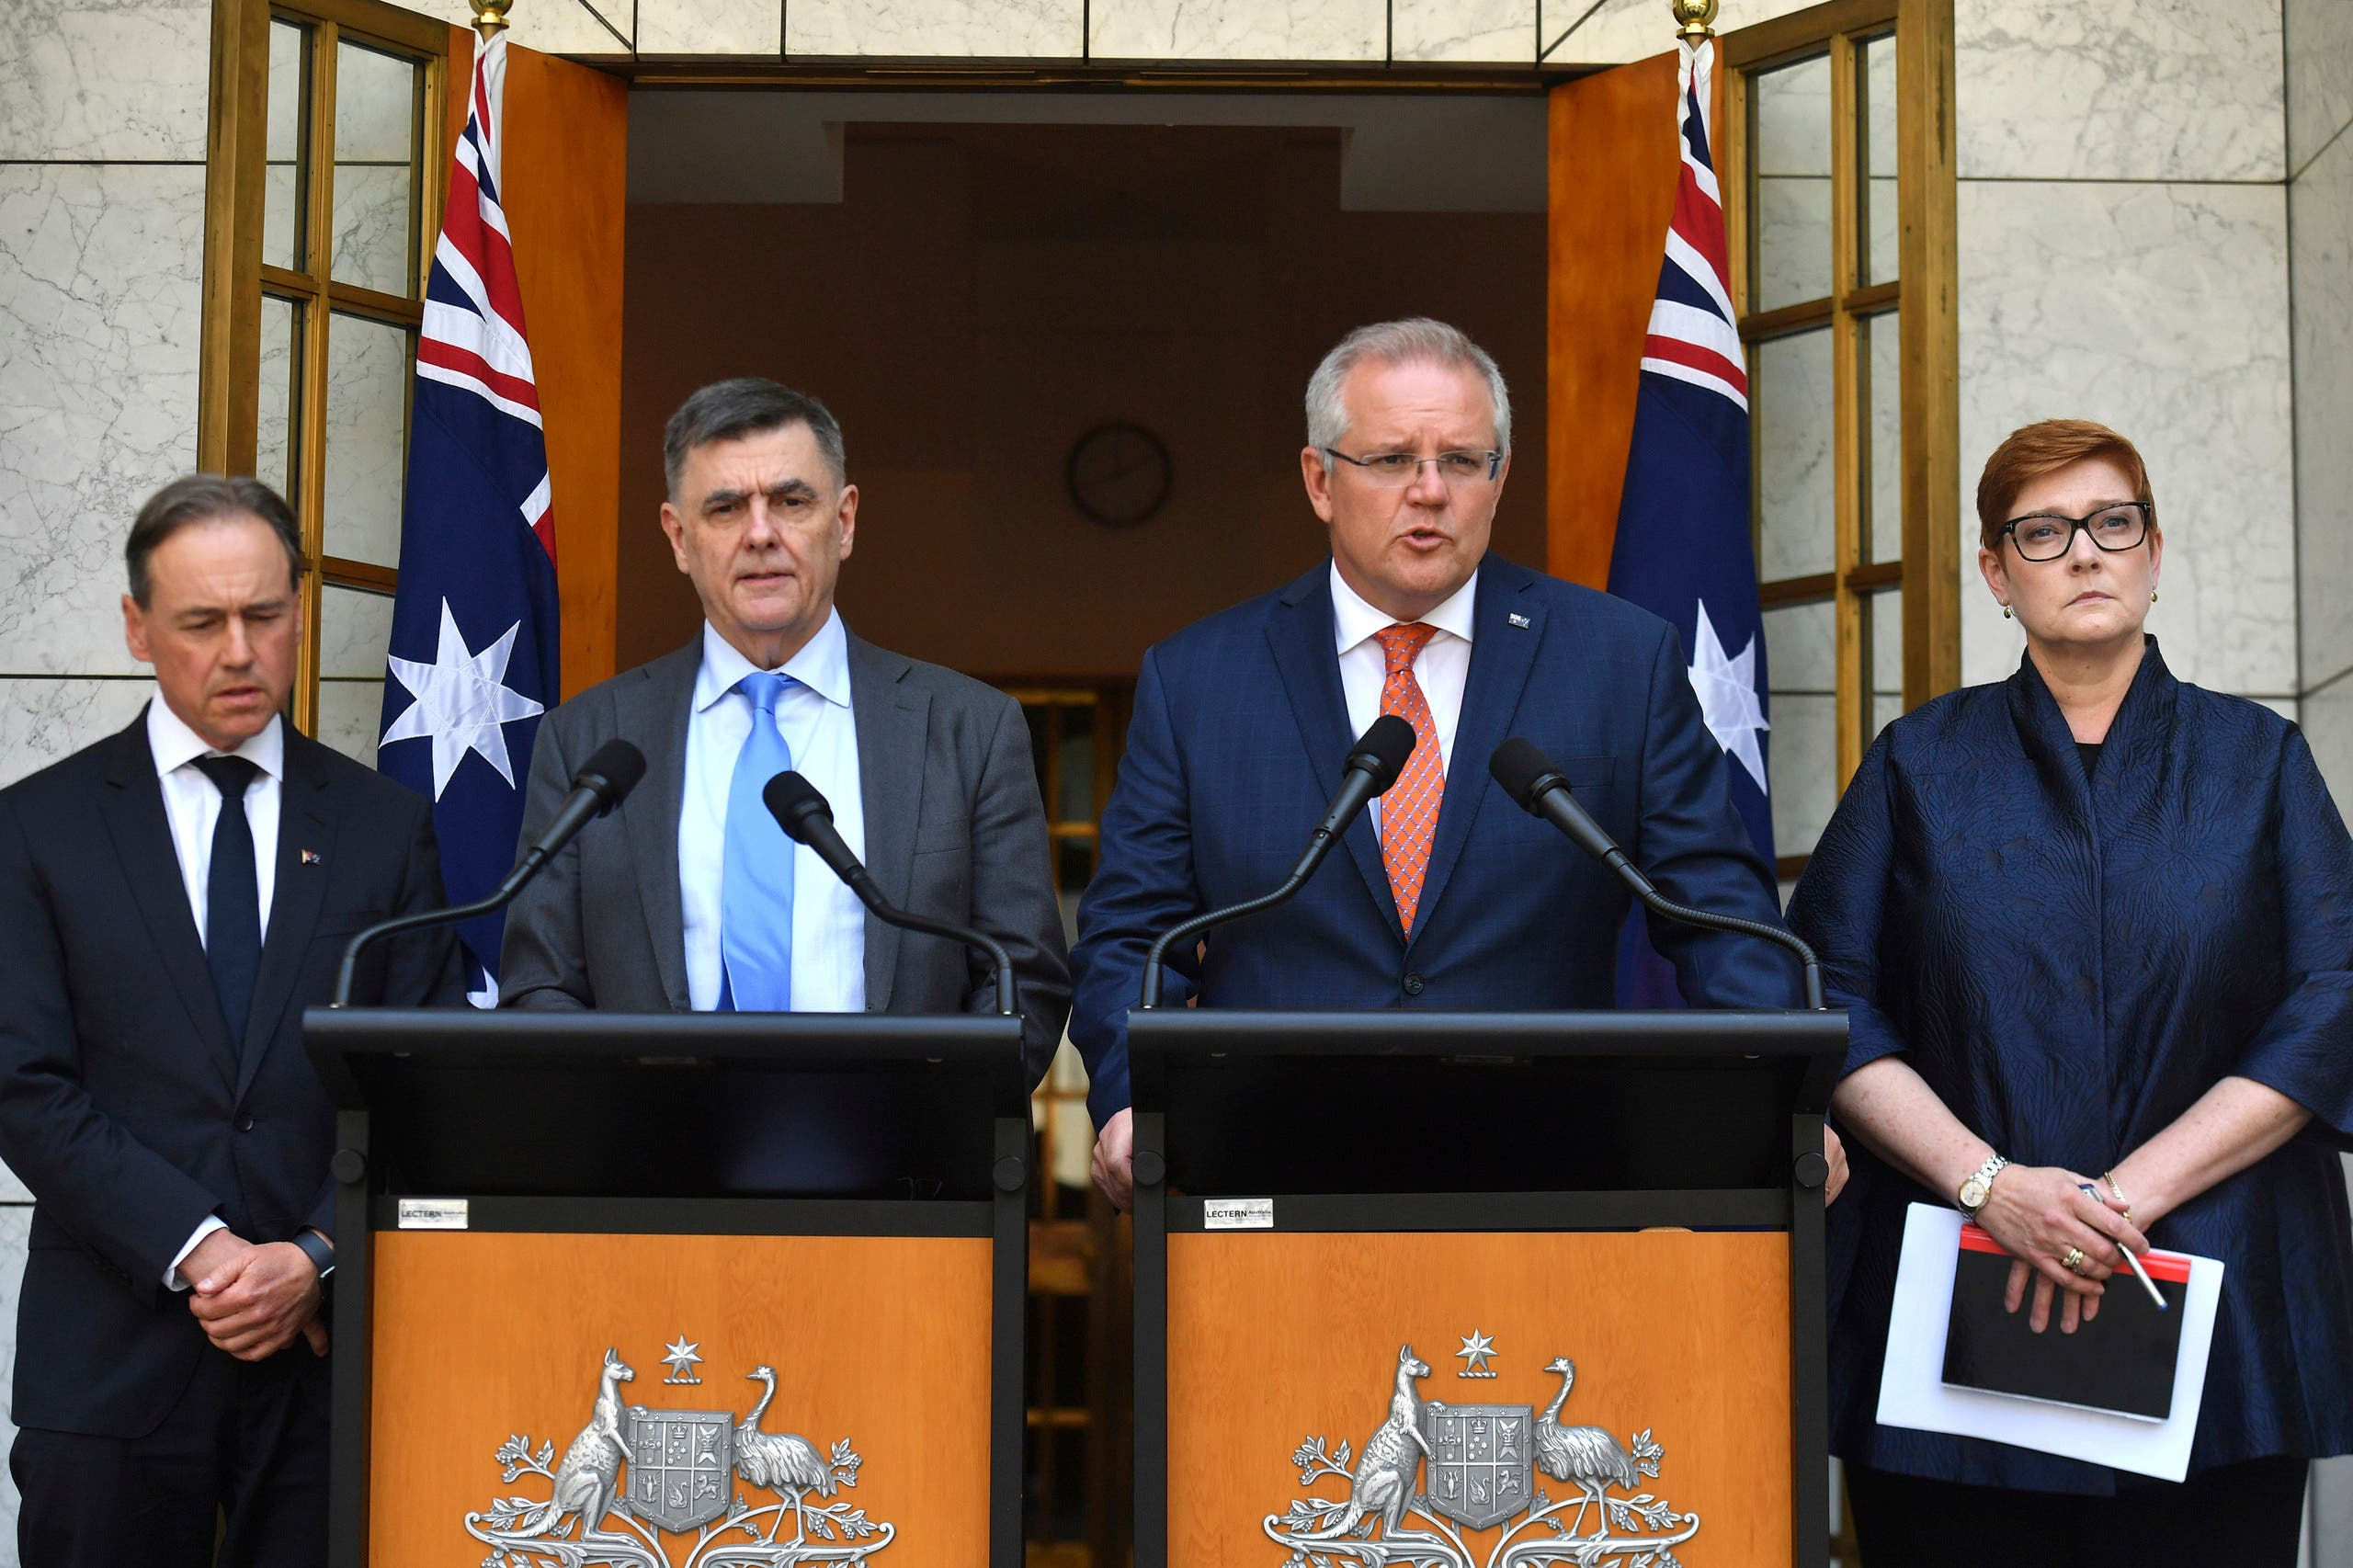 Australian Prime Minister Scott Morrison, second right, Minister for Health Greg Hunt, left, Chief Medical Officer Professor Brendan Murphy, and Minister for Foreign Affairs Marise Payne, January 28, 2020. (AP)